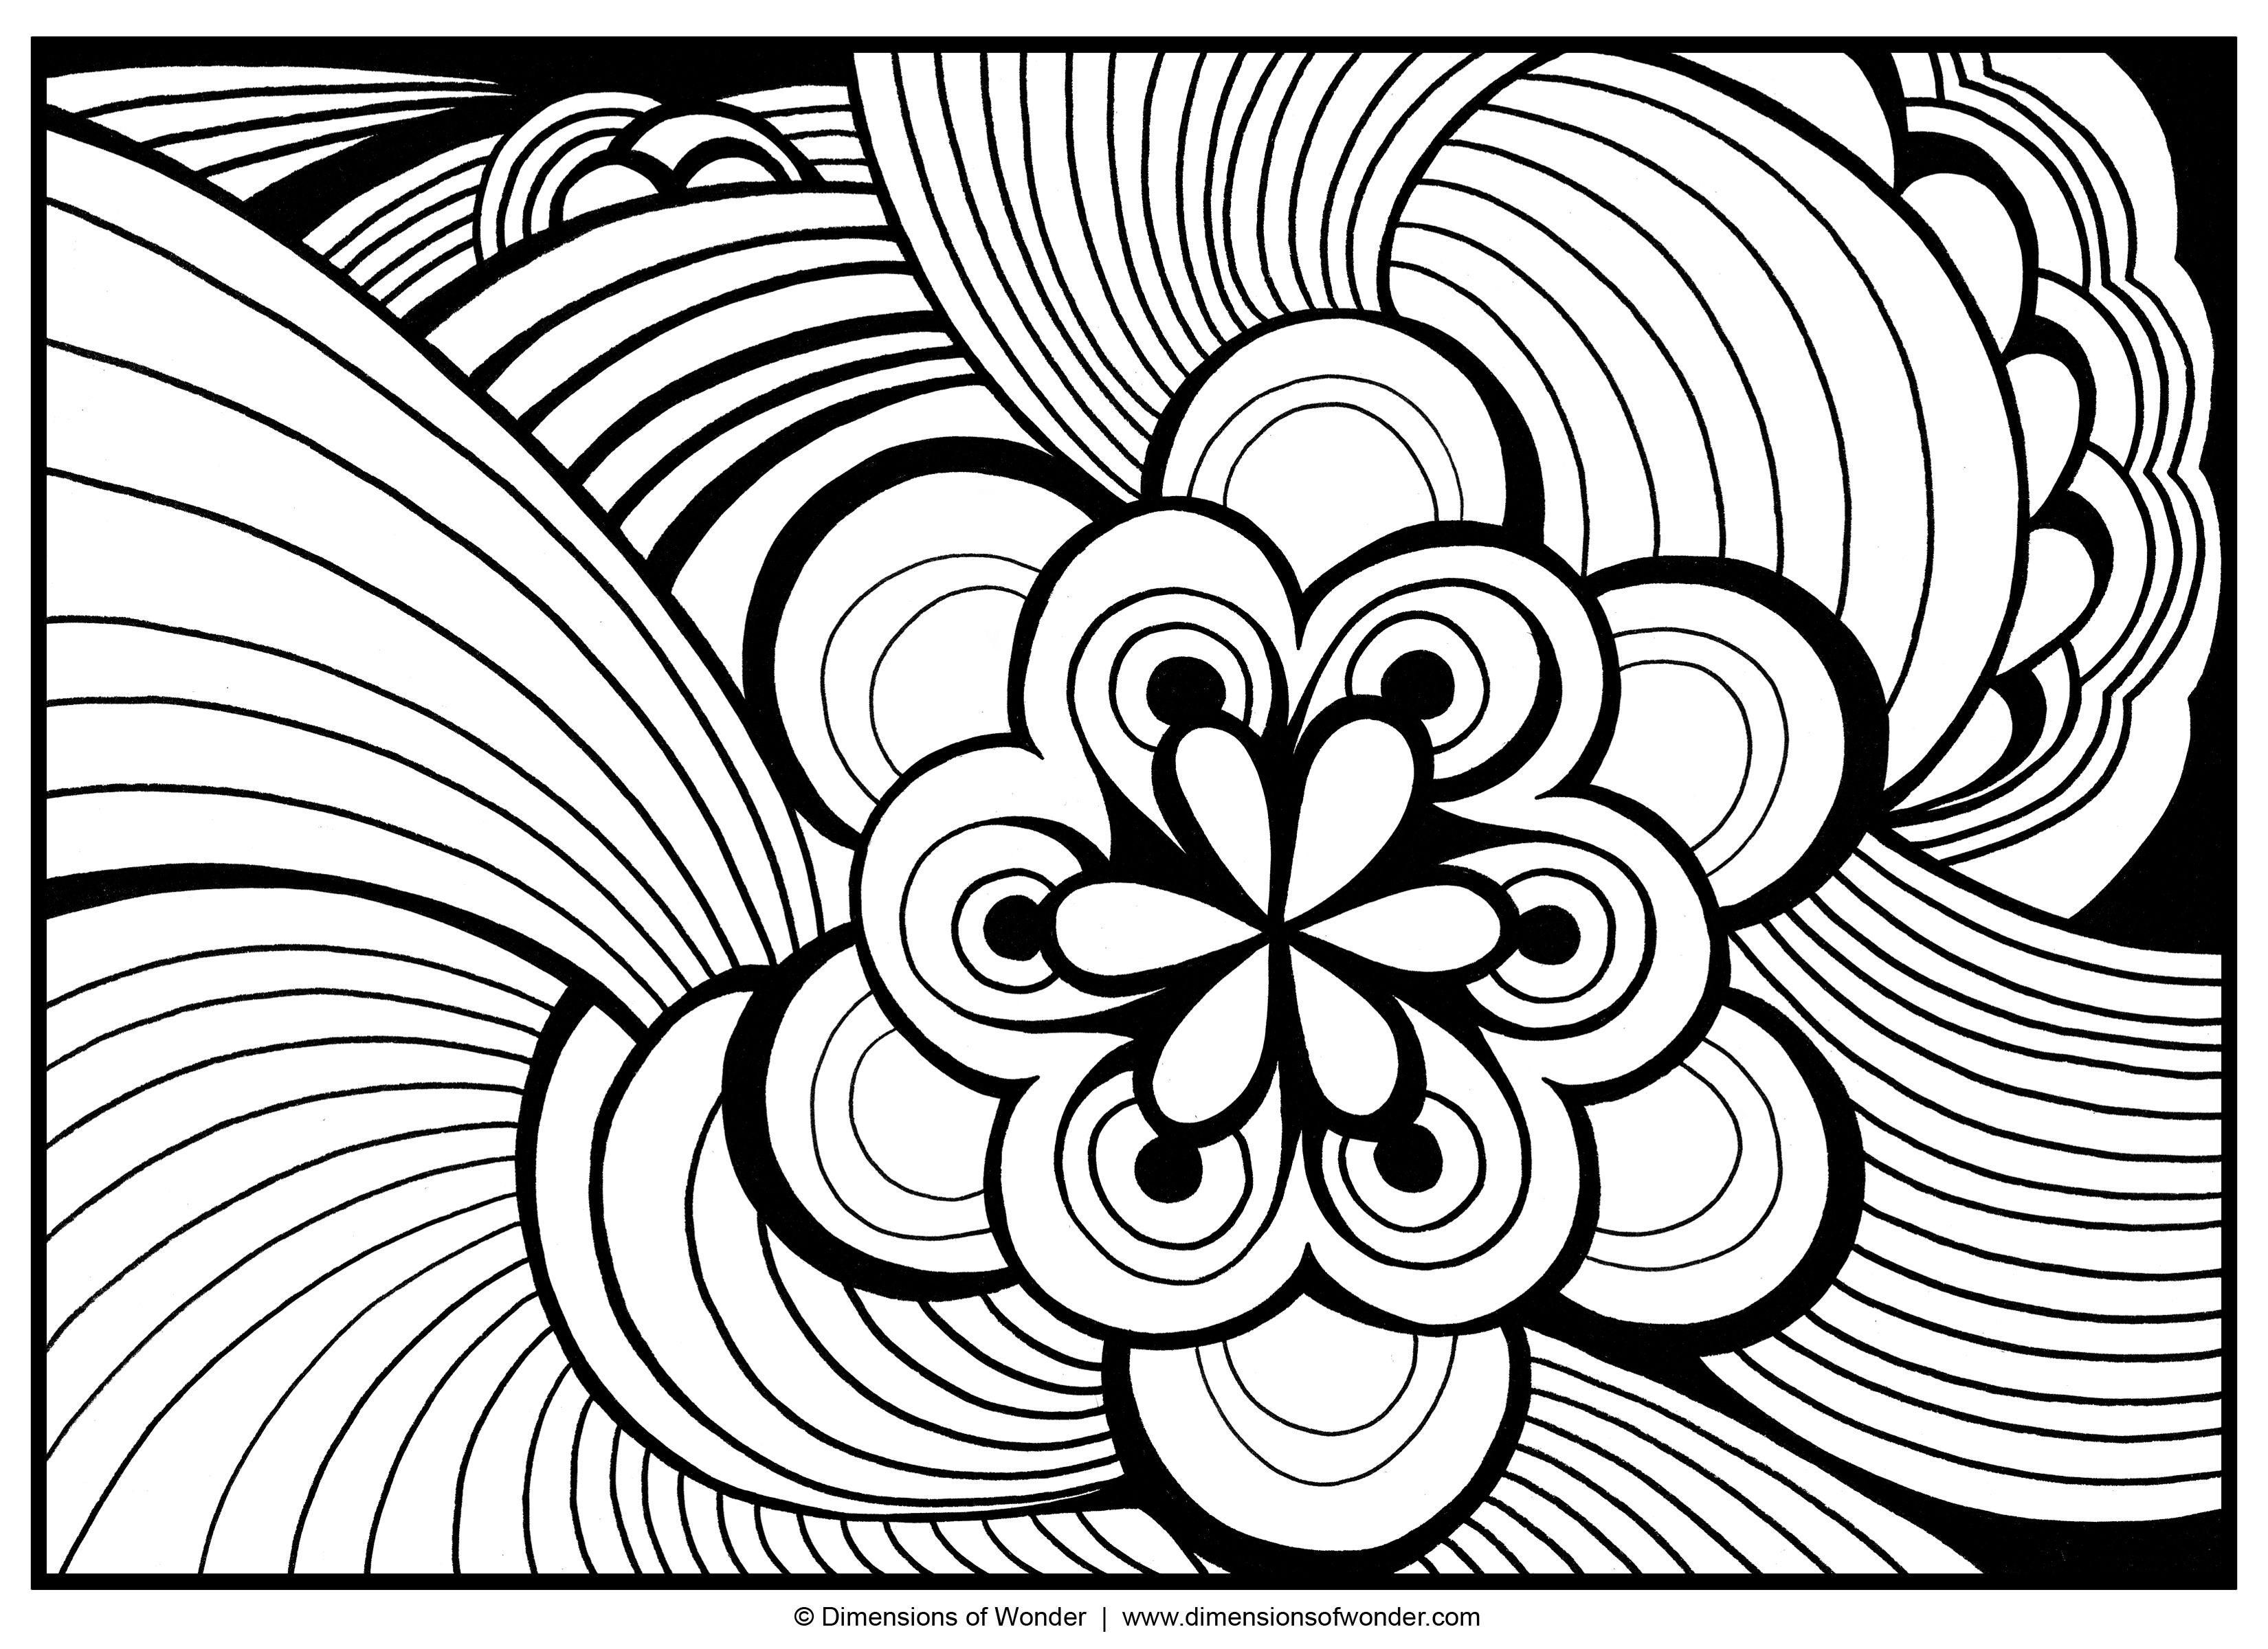 abstract coloring pages for kids free printable abstract coloring pages for adults abstract coloring kids for pages